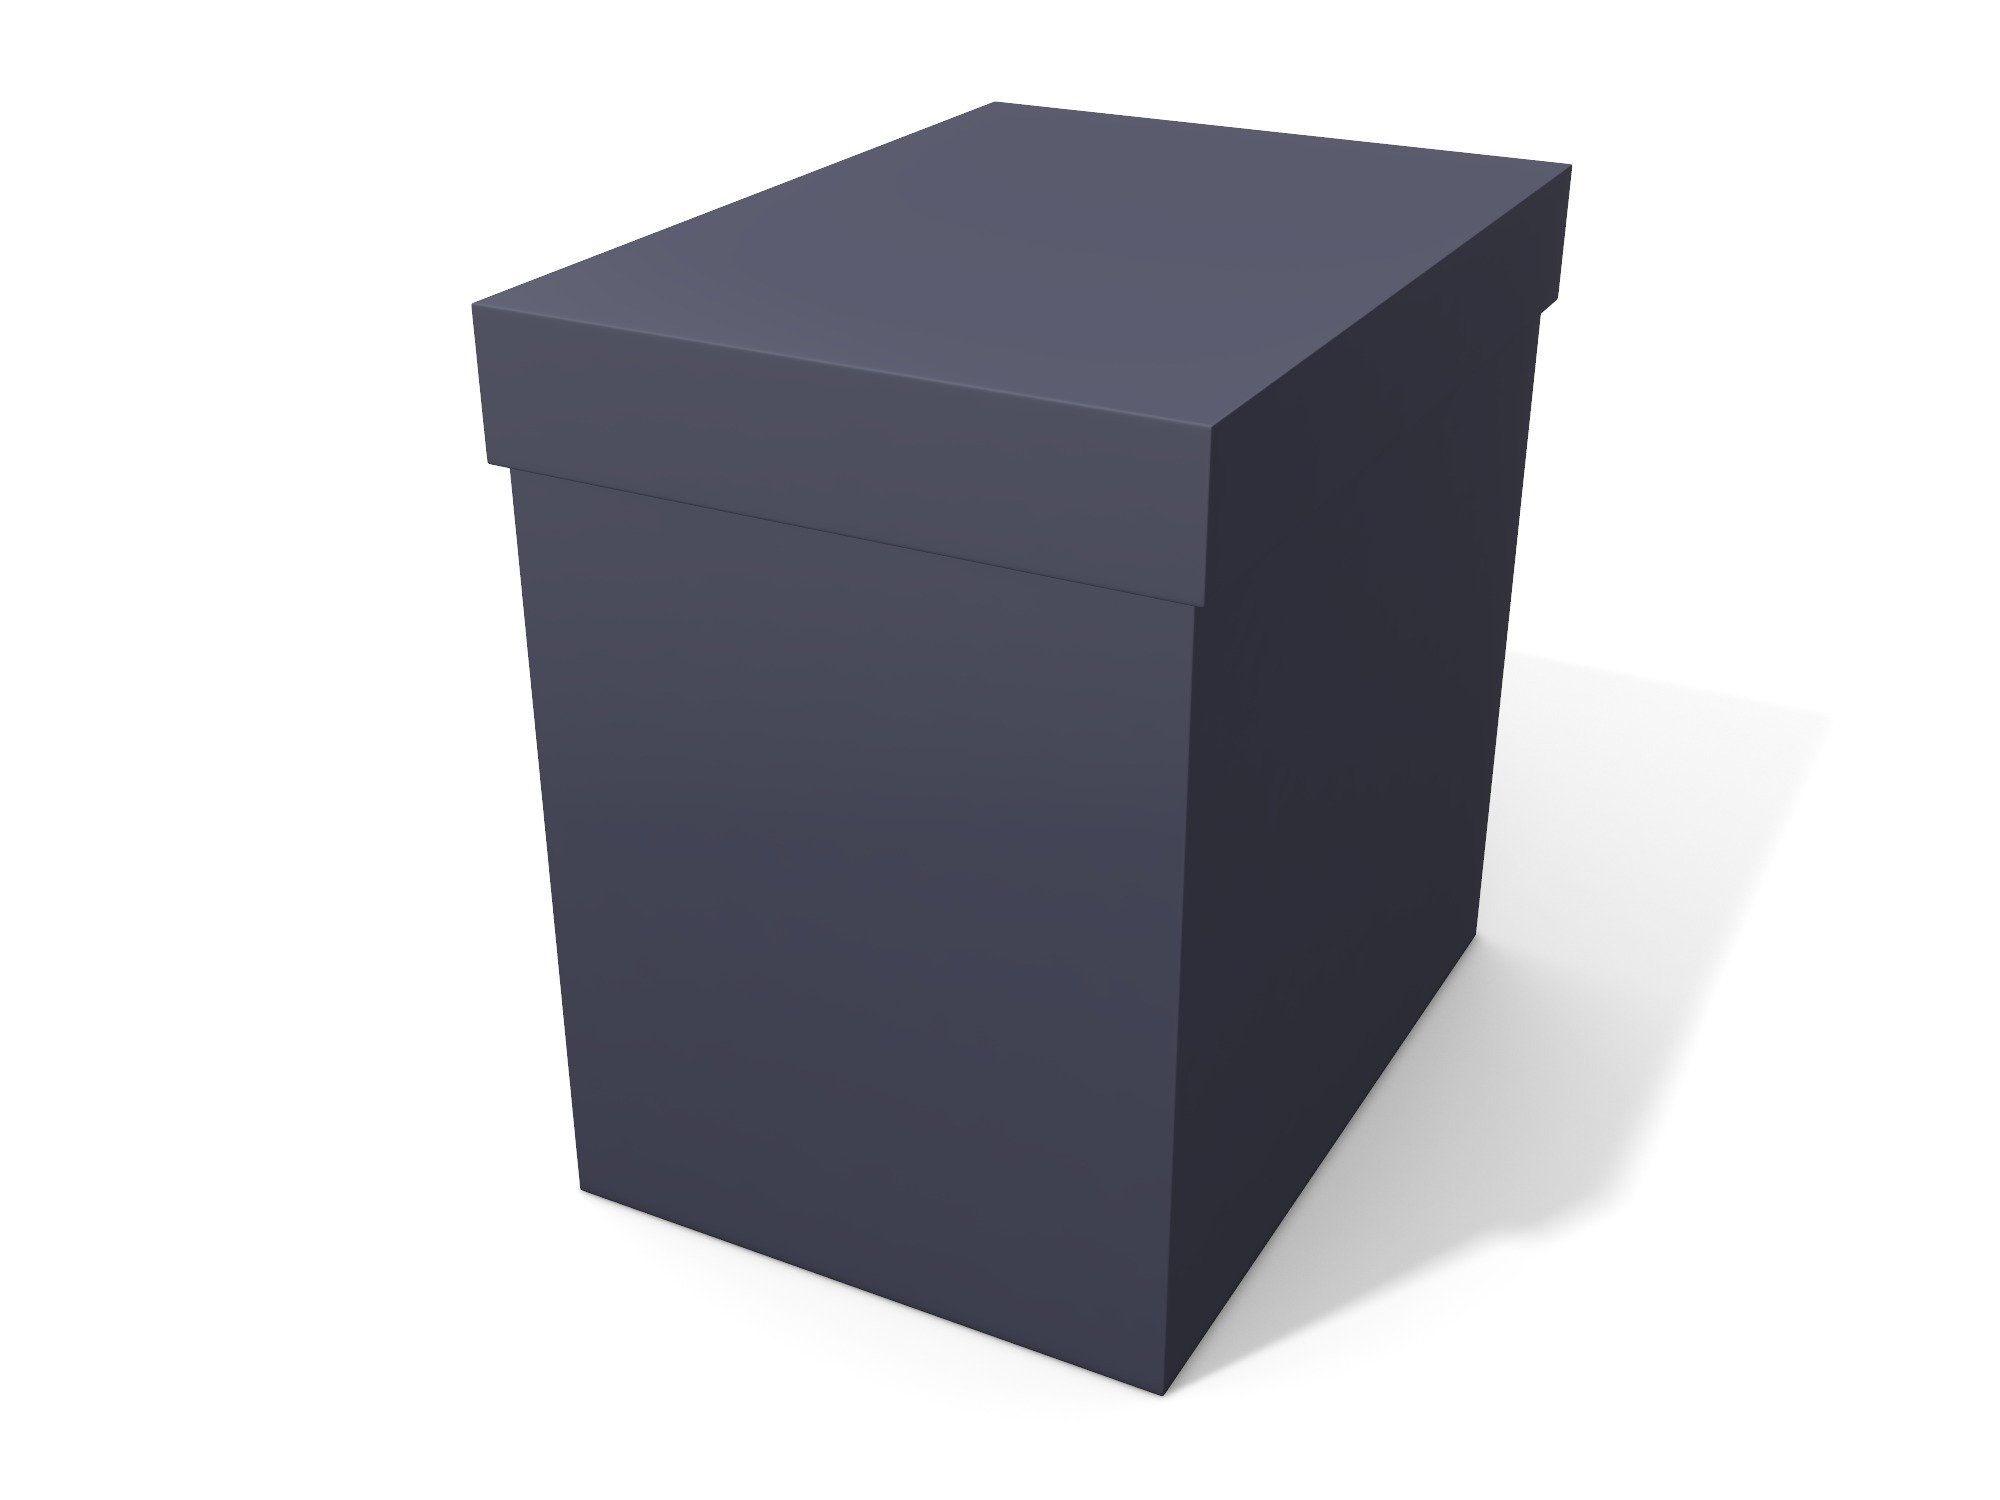 Box with lid 140 × 140 × 100 - 3D design by Vectary assets Nov 6, 2018